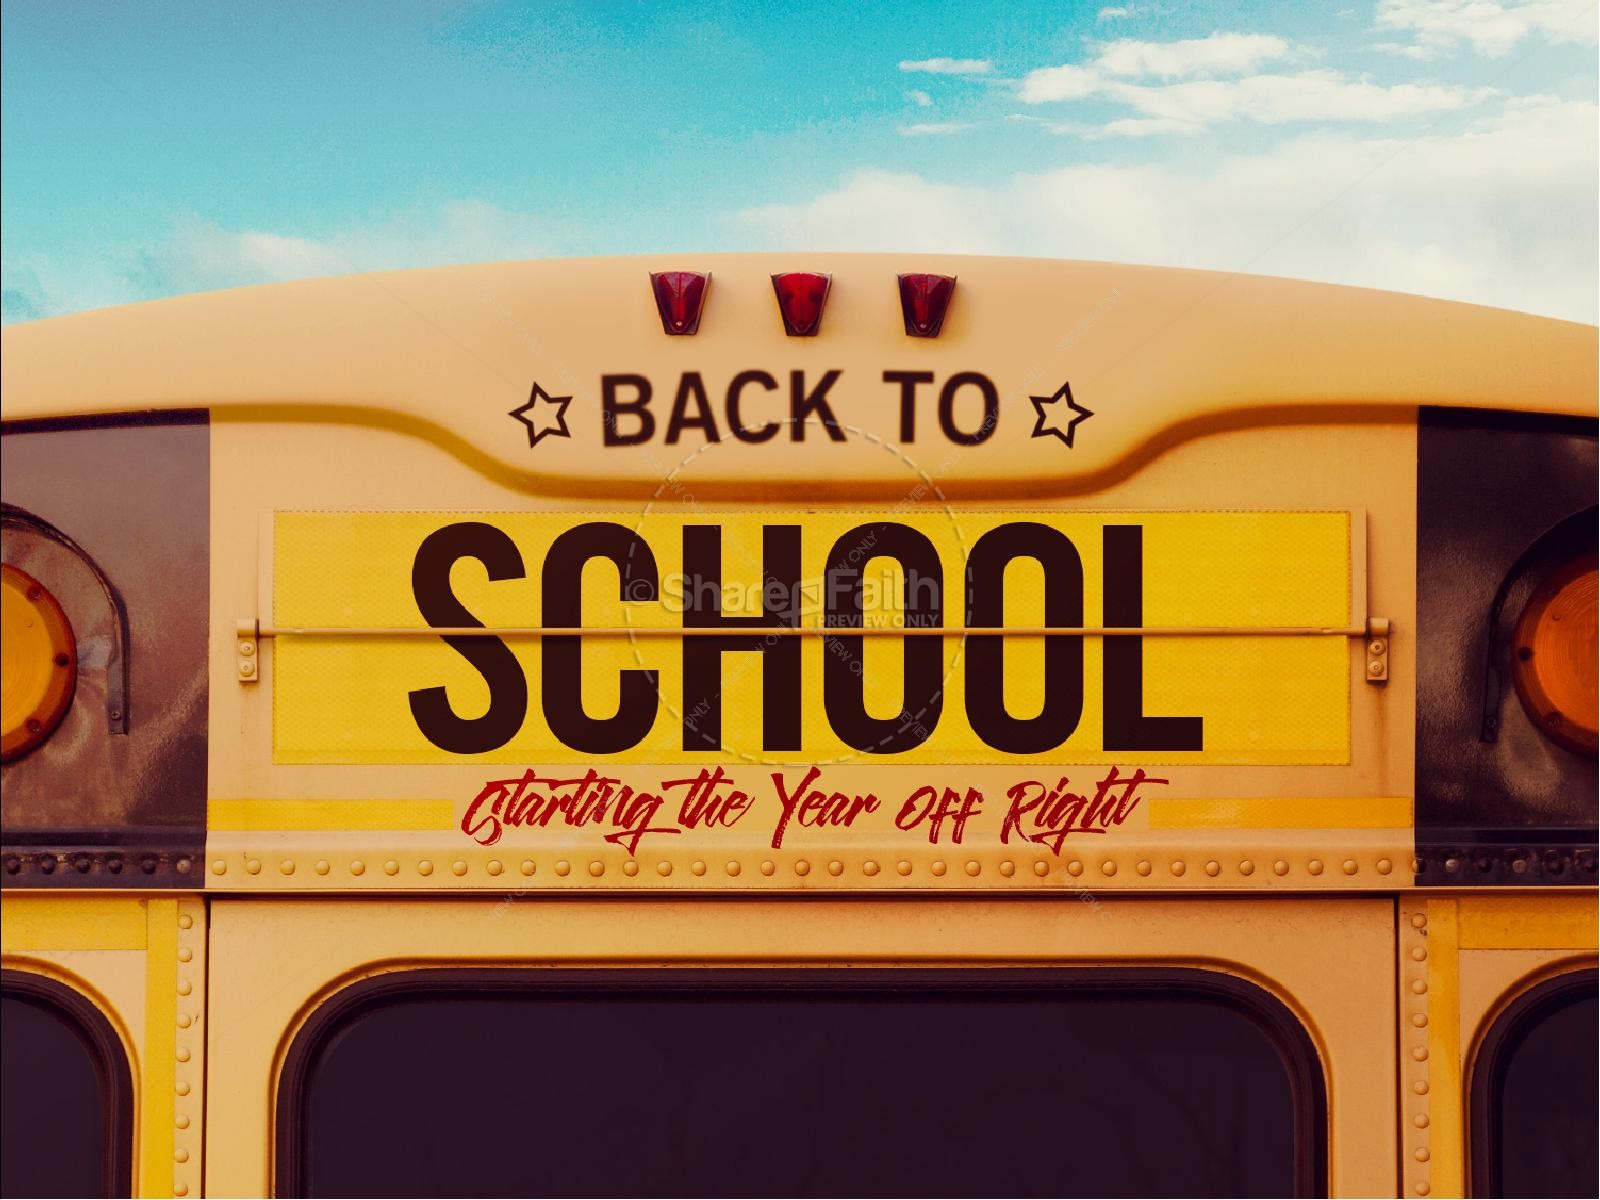 Back to school bus church powerpoint back to school powerpoints back to school bus church powerpoint toneelgroepblik Images